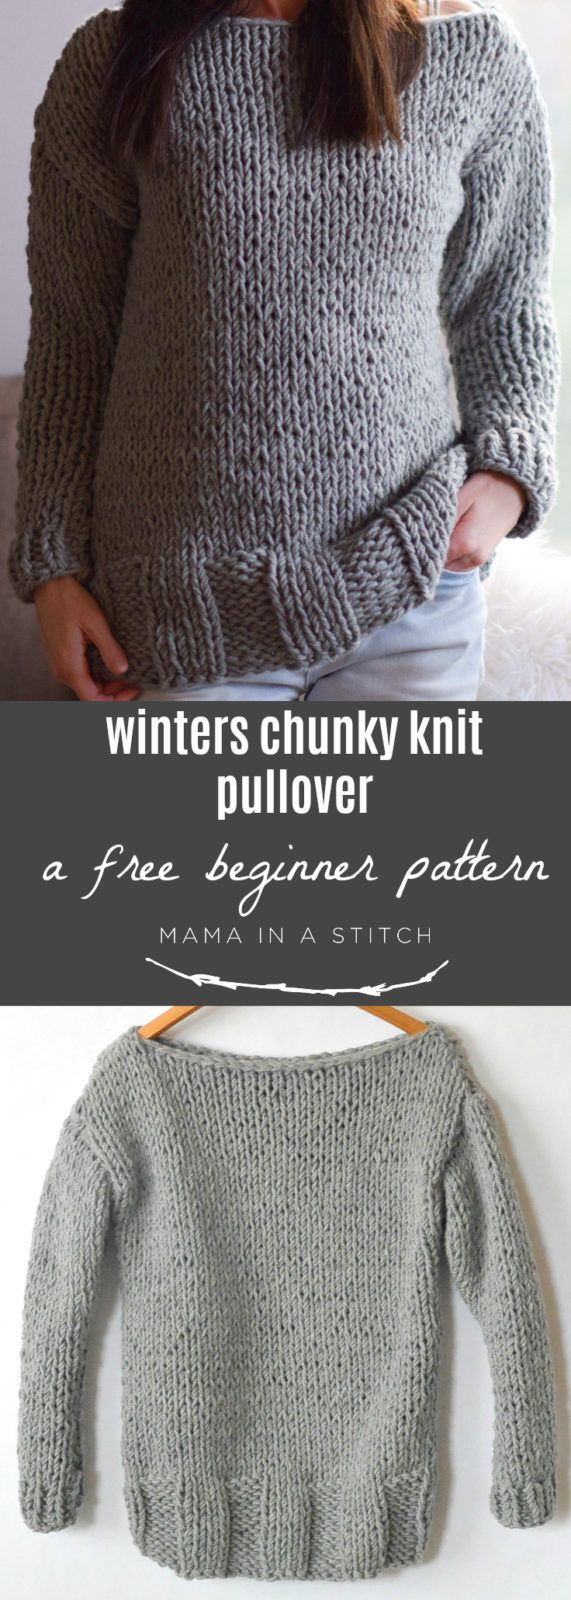 3496 best pretty knitting patterns images on pinterest hand super easy free knit pullover pattern for cold winter days from mamainastitch via bankloansurffo Gallery